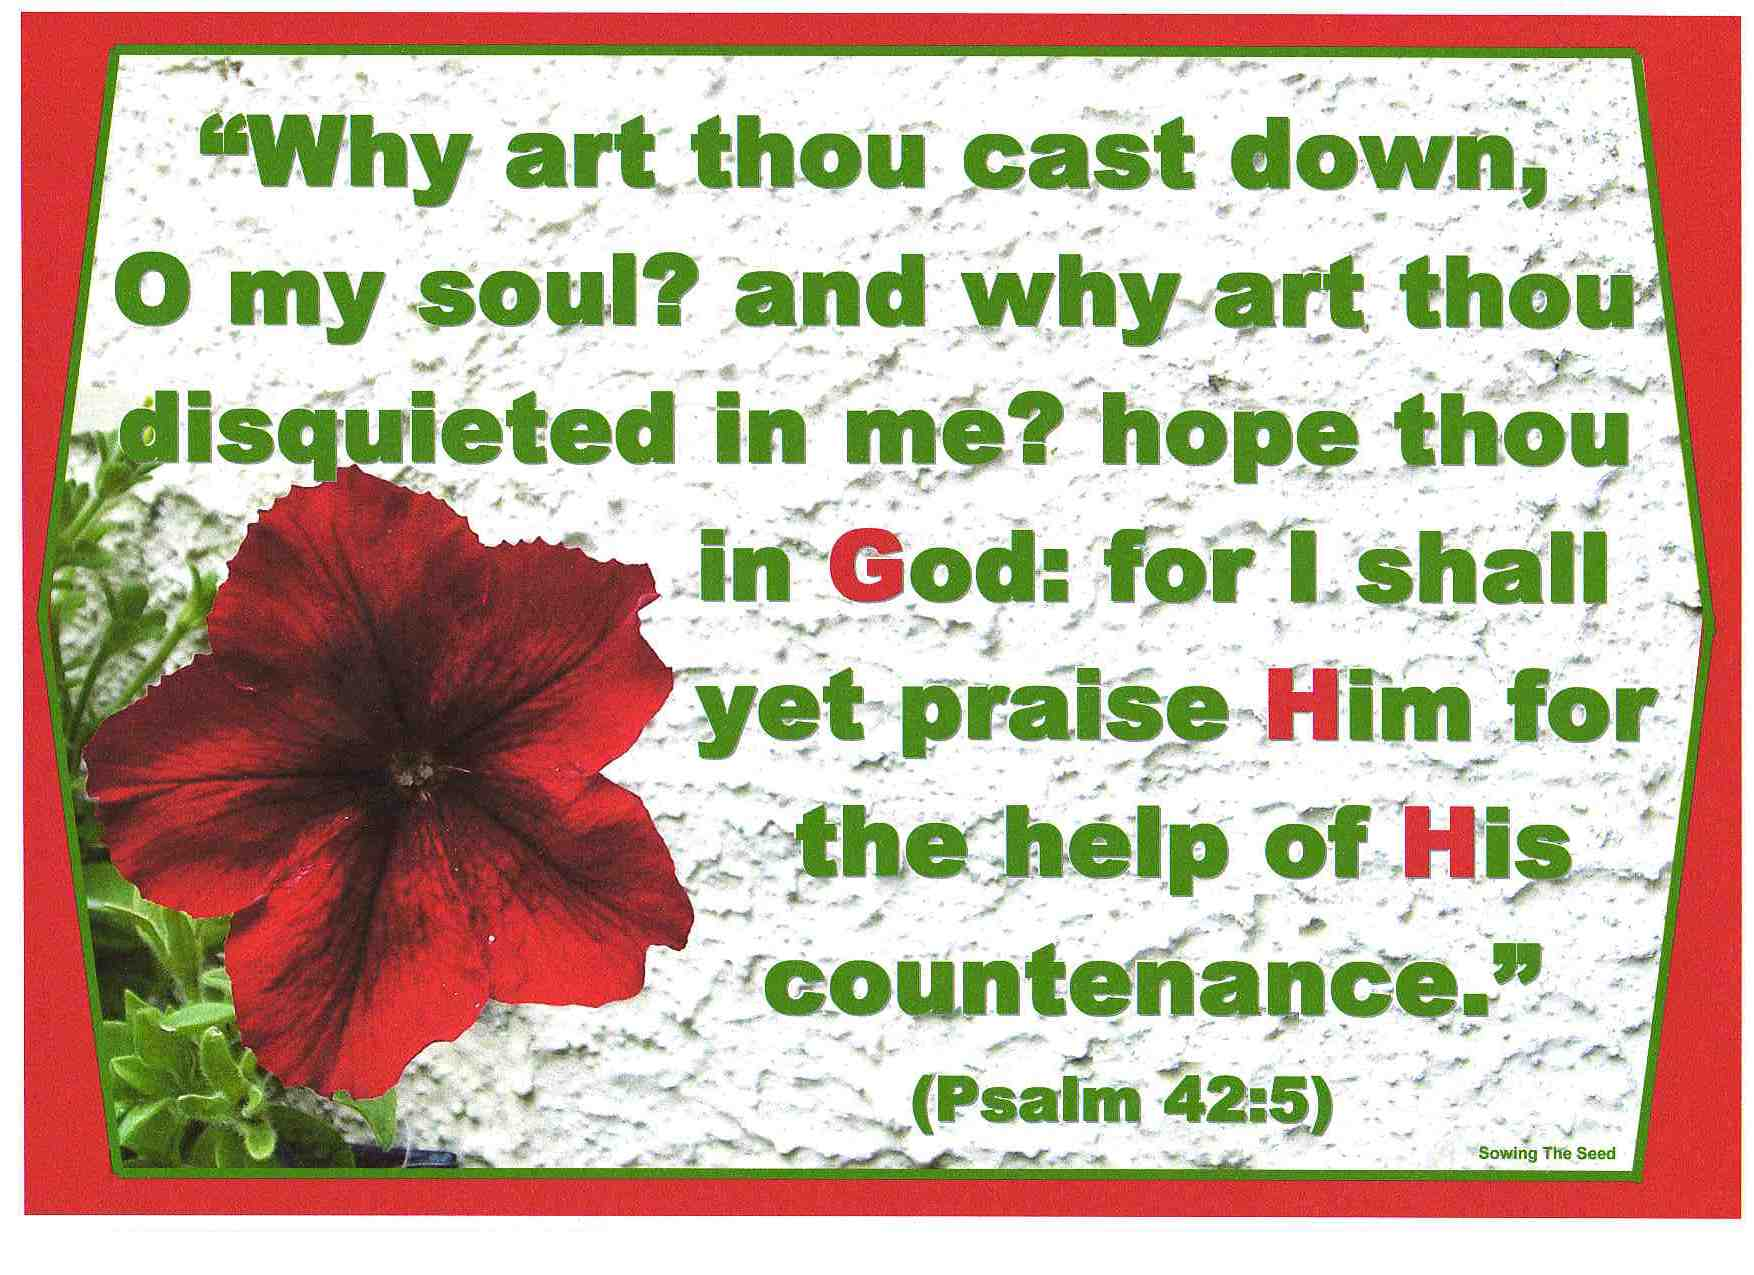 The Help Of His Countenance